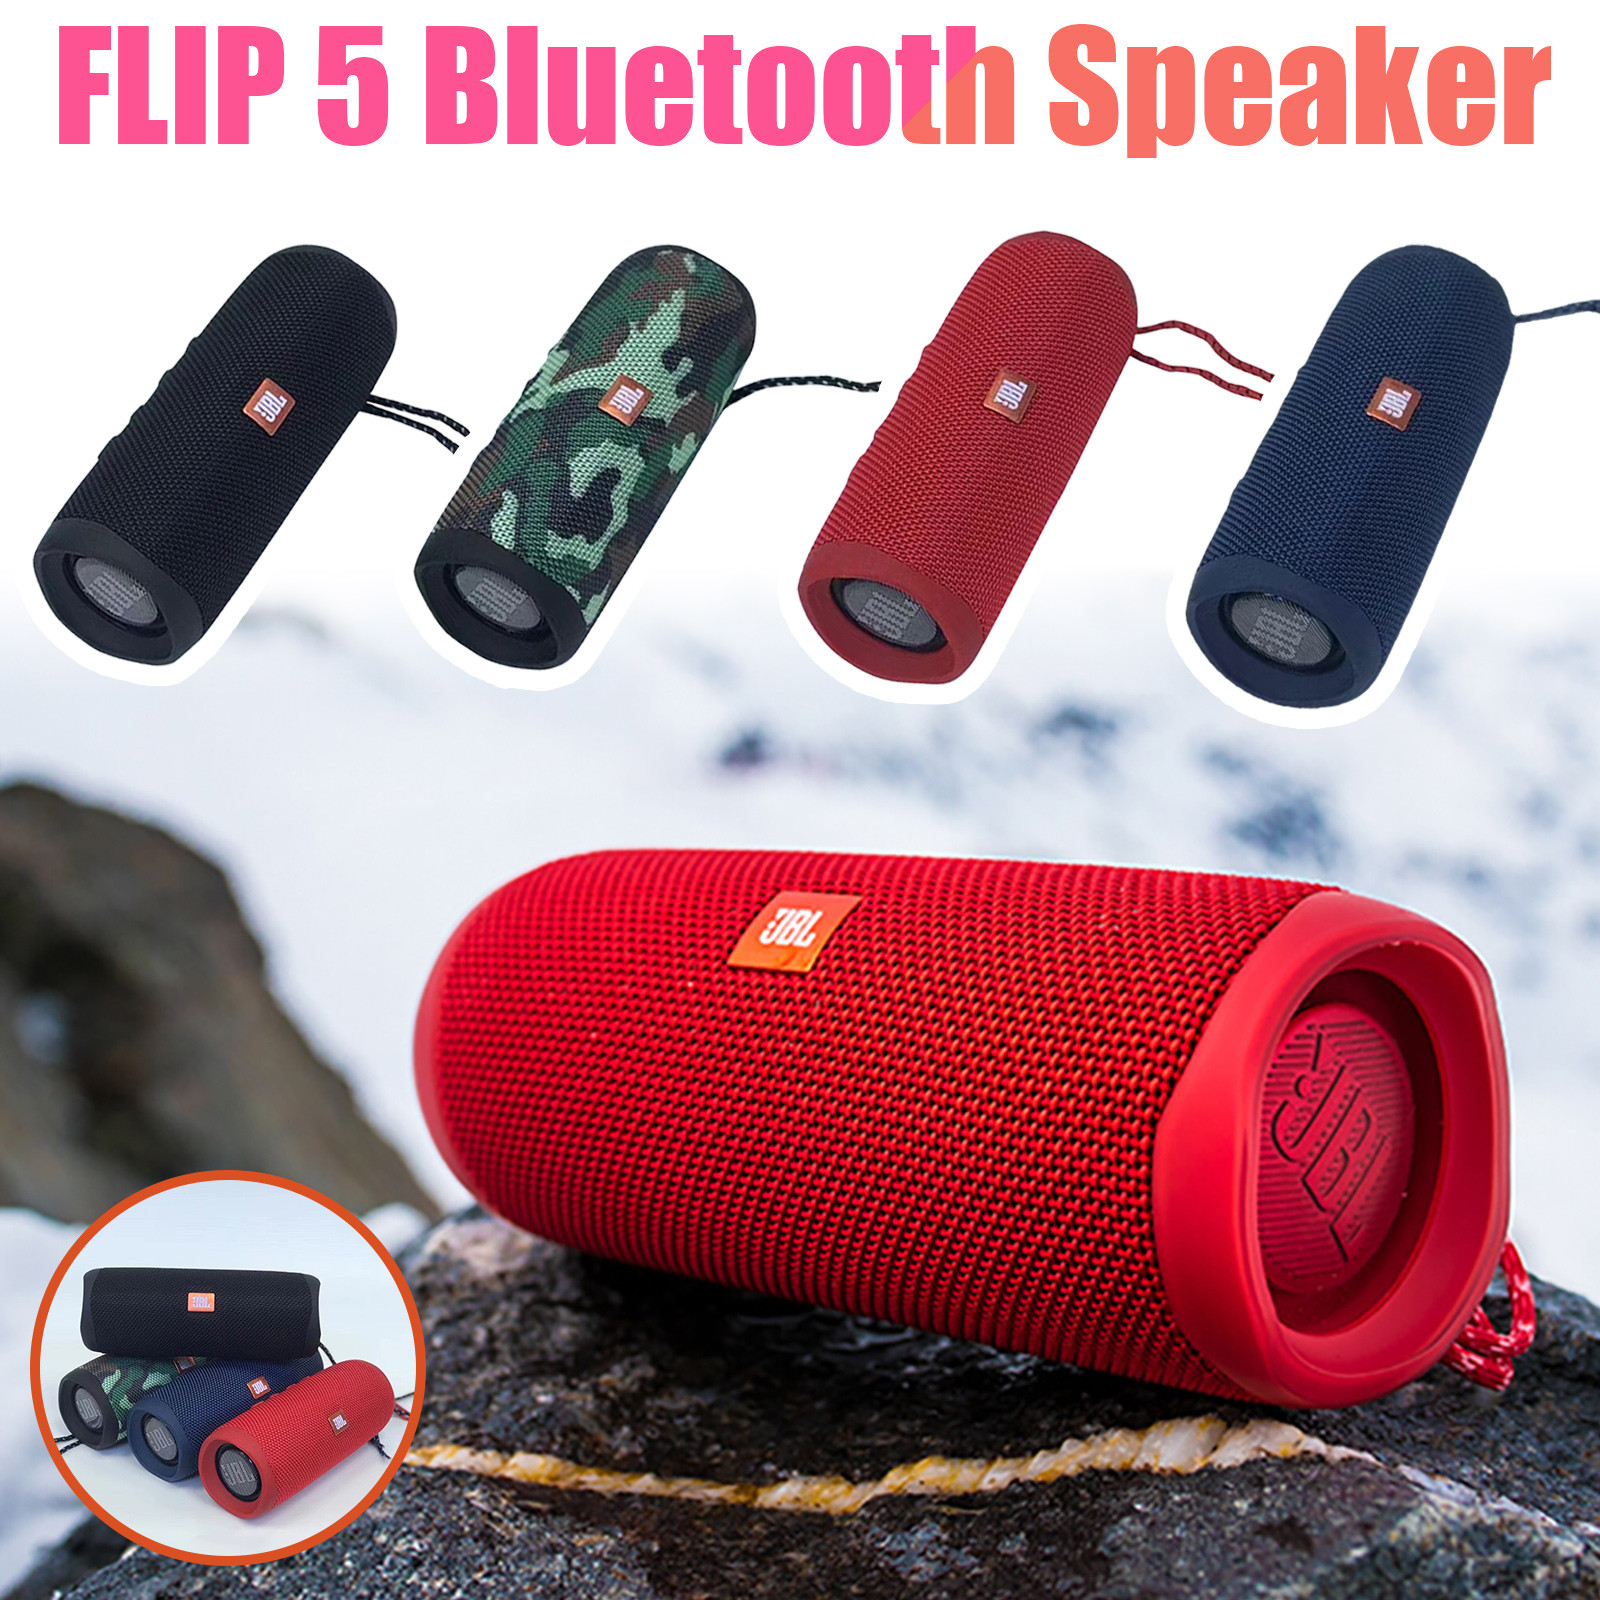 NEW Flip 5 Powerful Bluetooth Speaker Mini Portable IPX7 Waterproof Wireless Music Partybox Outdoor Travel Party